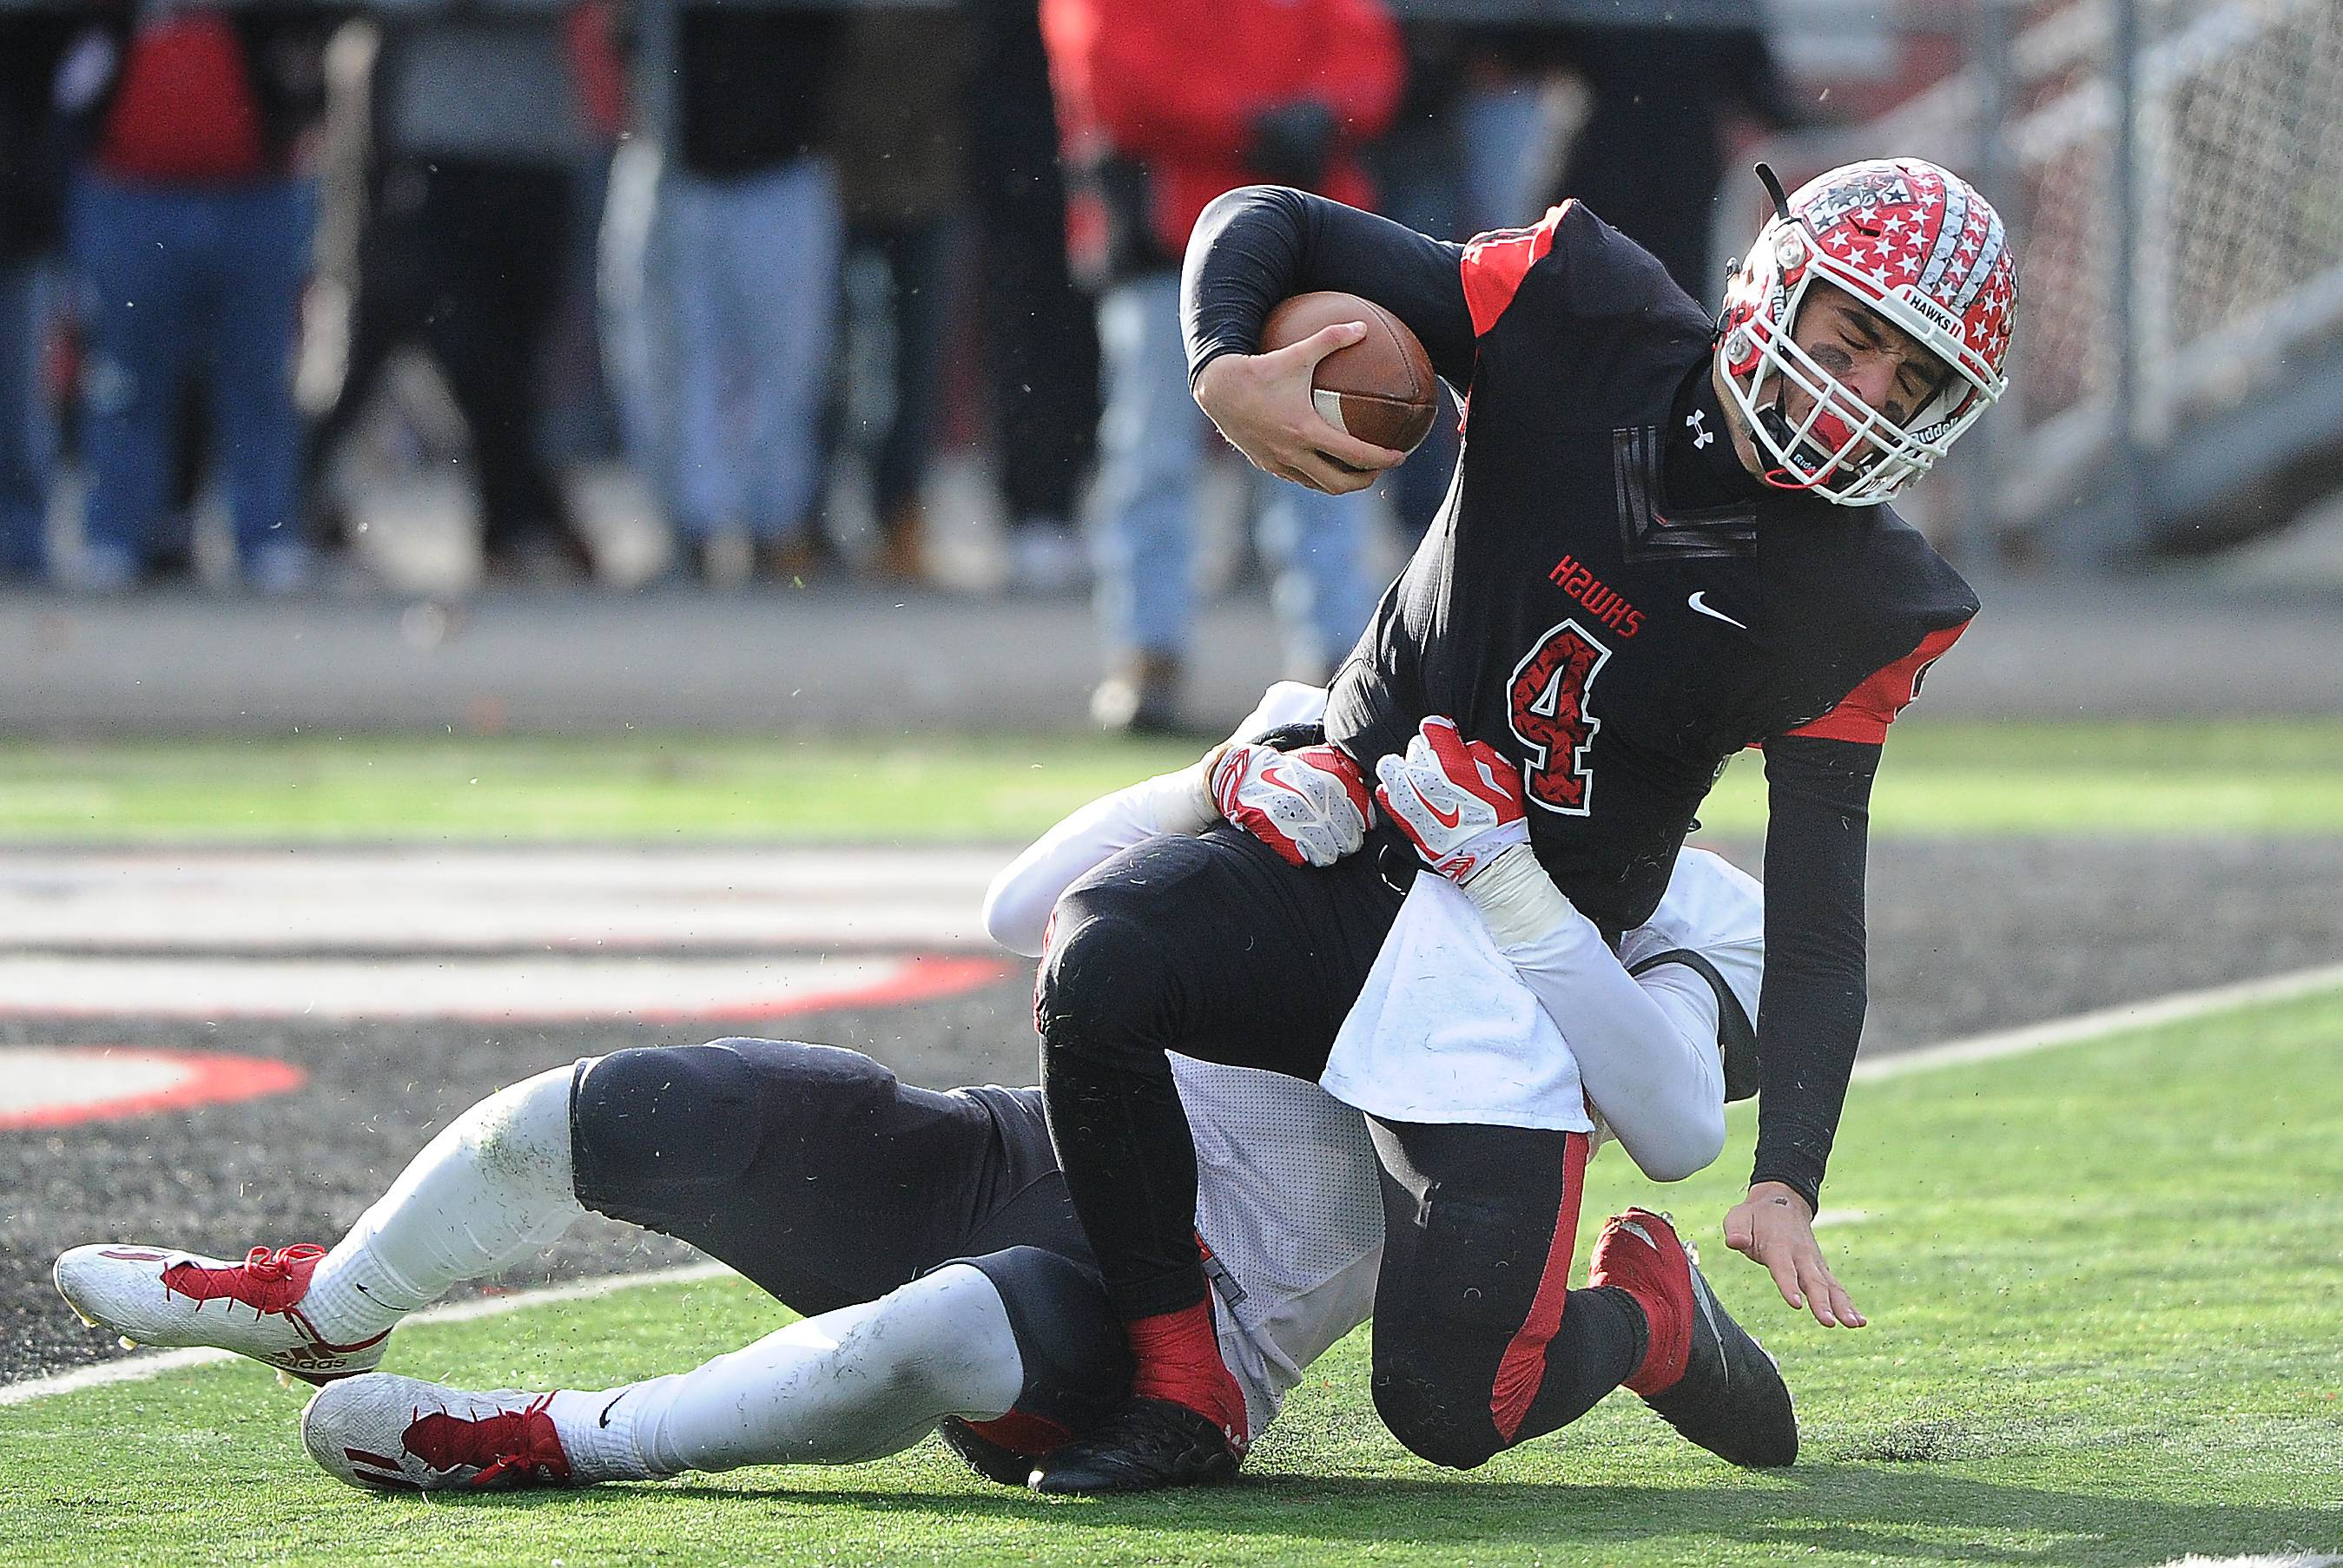 Palatine's Mac Balanganayi sacks Maine South quarterback Nick Leongas in the second quarter on Saturday in Park Ridge.